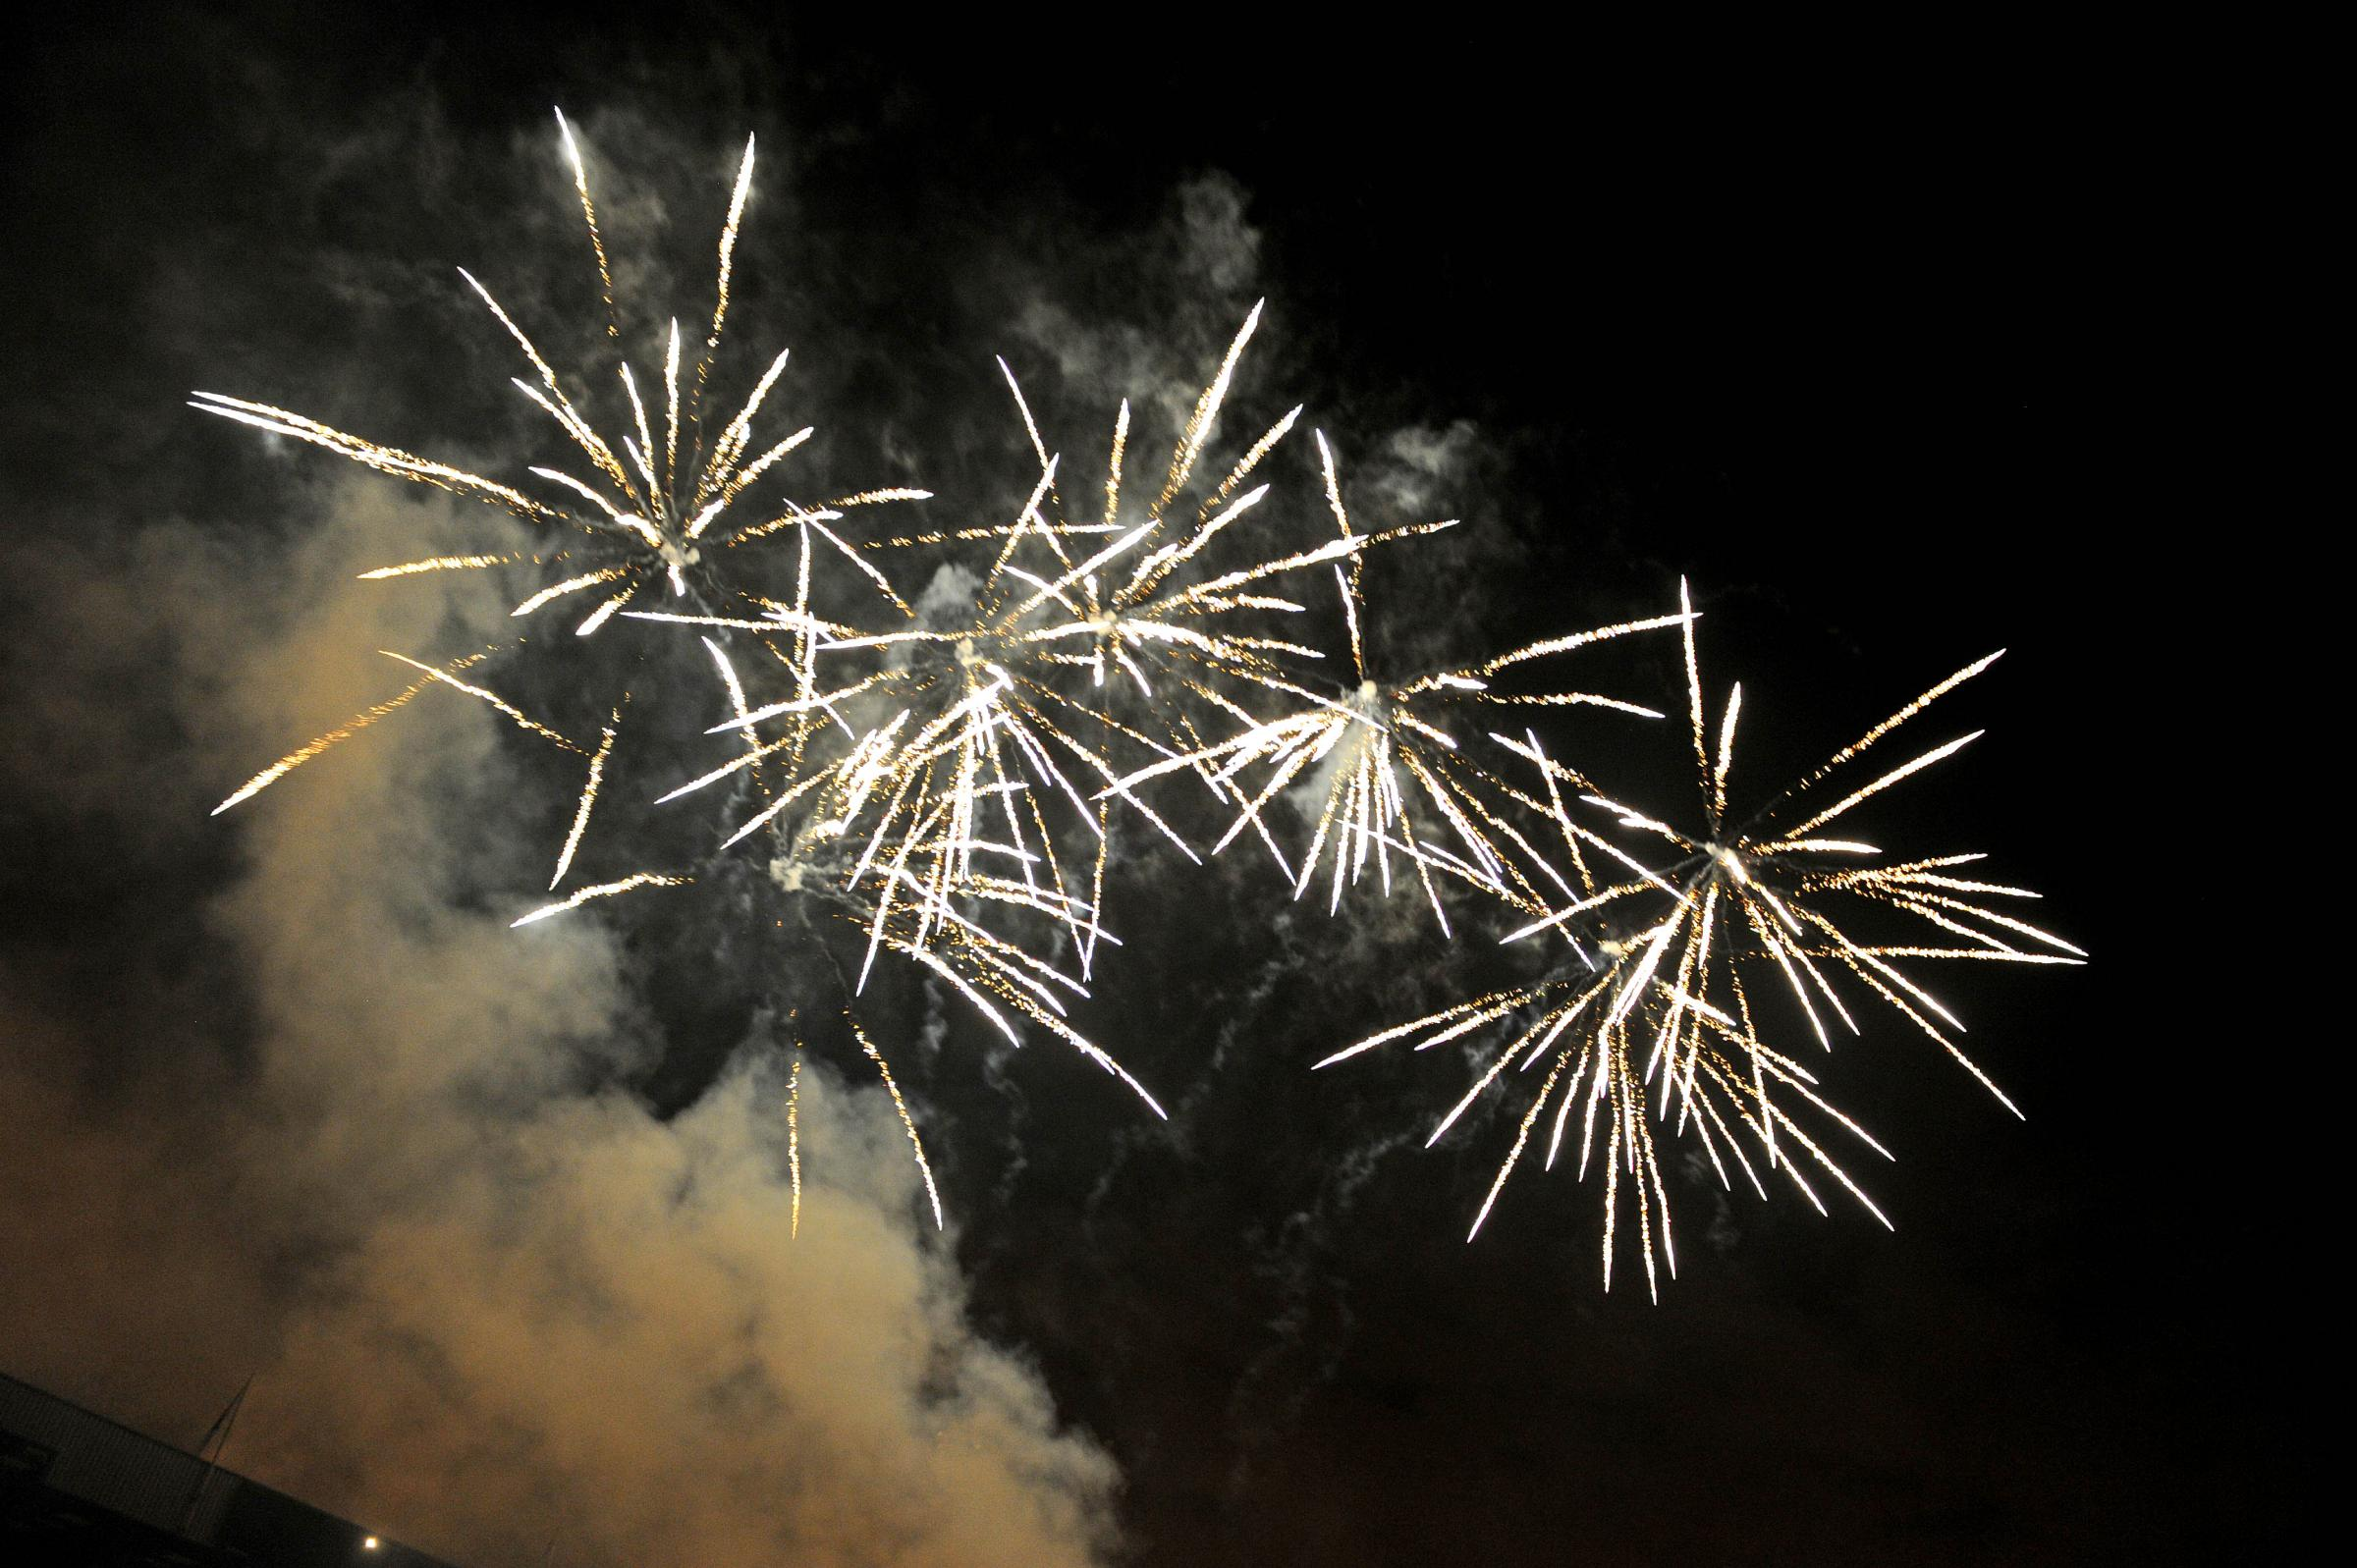 Bonfire night in Lymm set to go with a bang